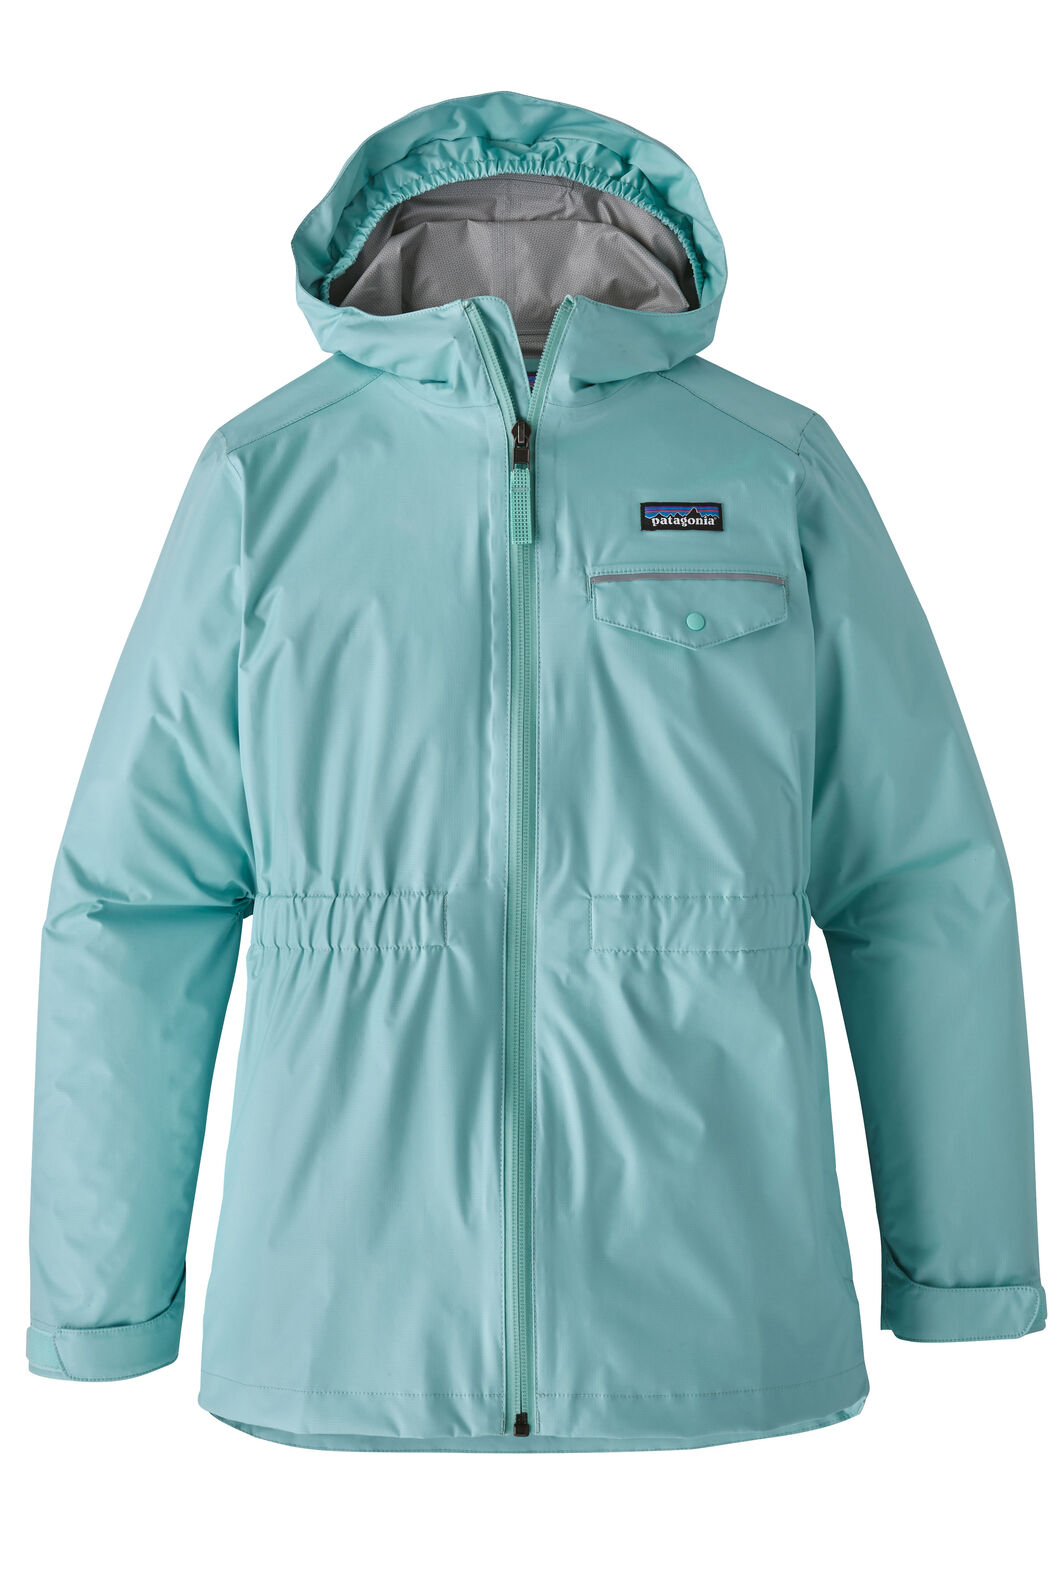 Patagonia Girls' Torrentshell Jkt, Blue, hi-res